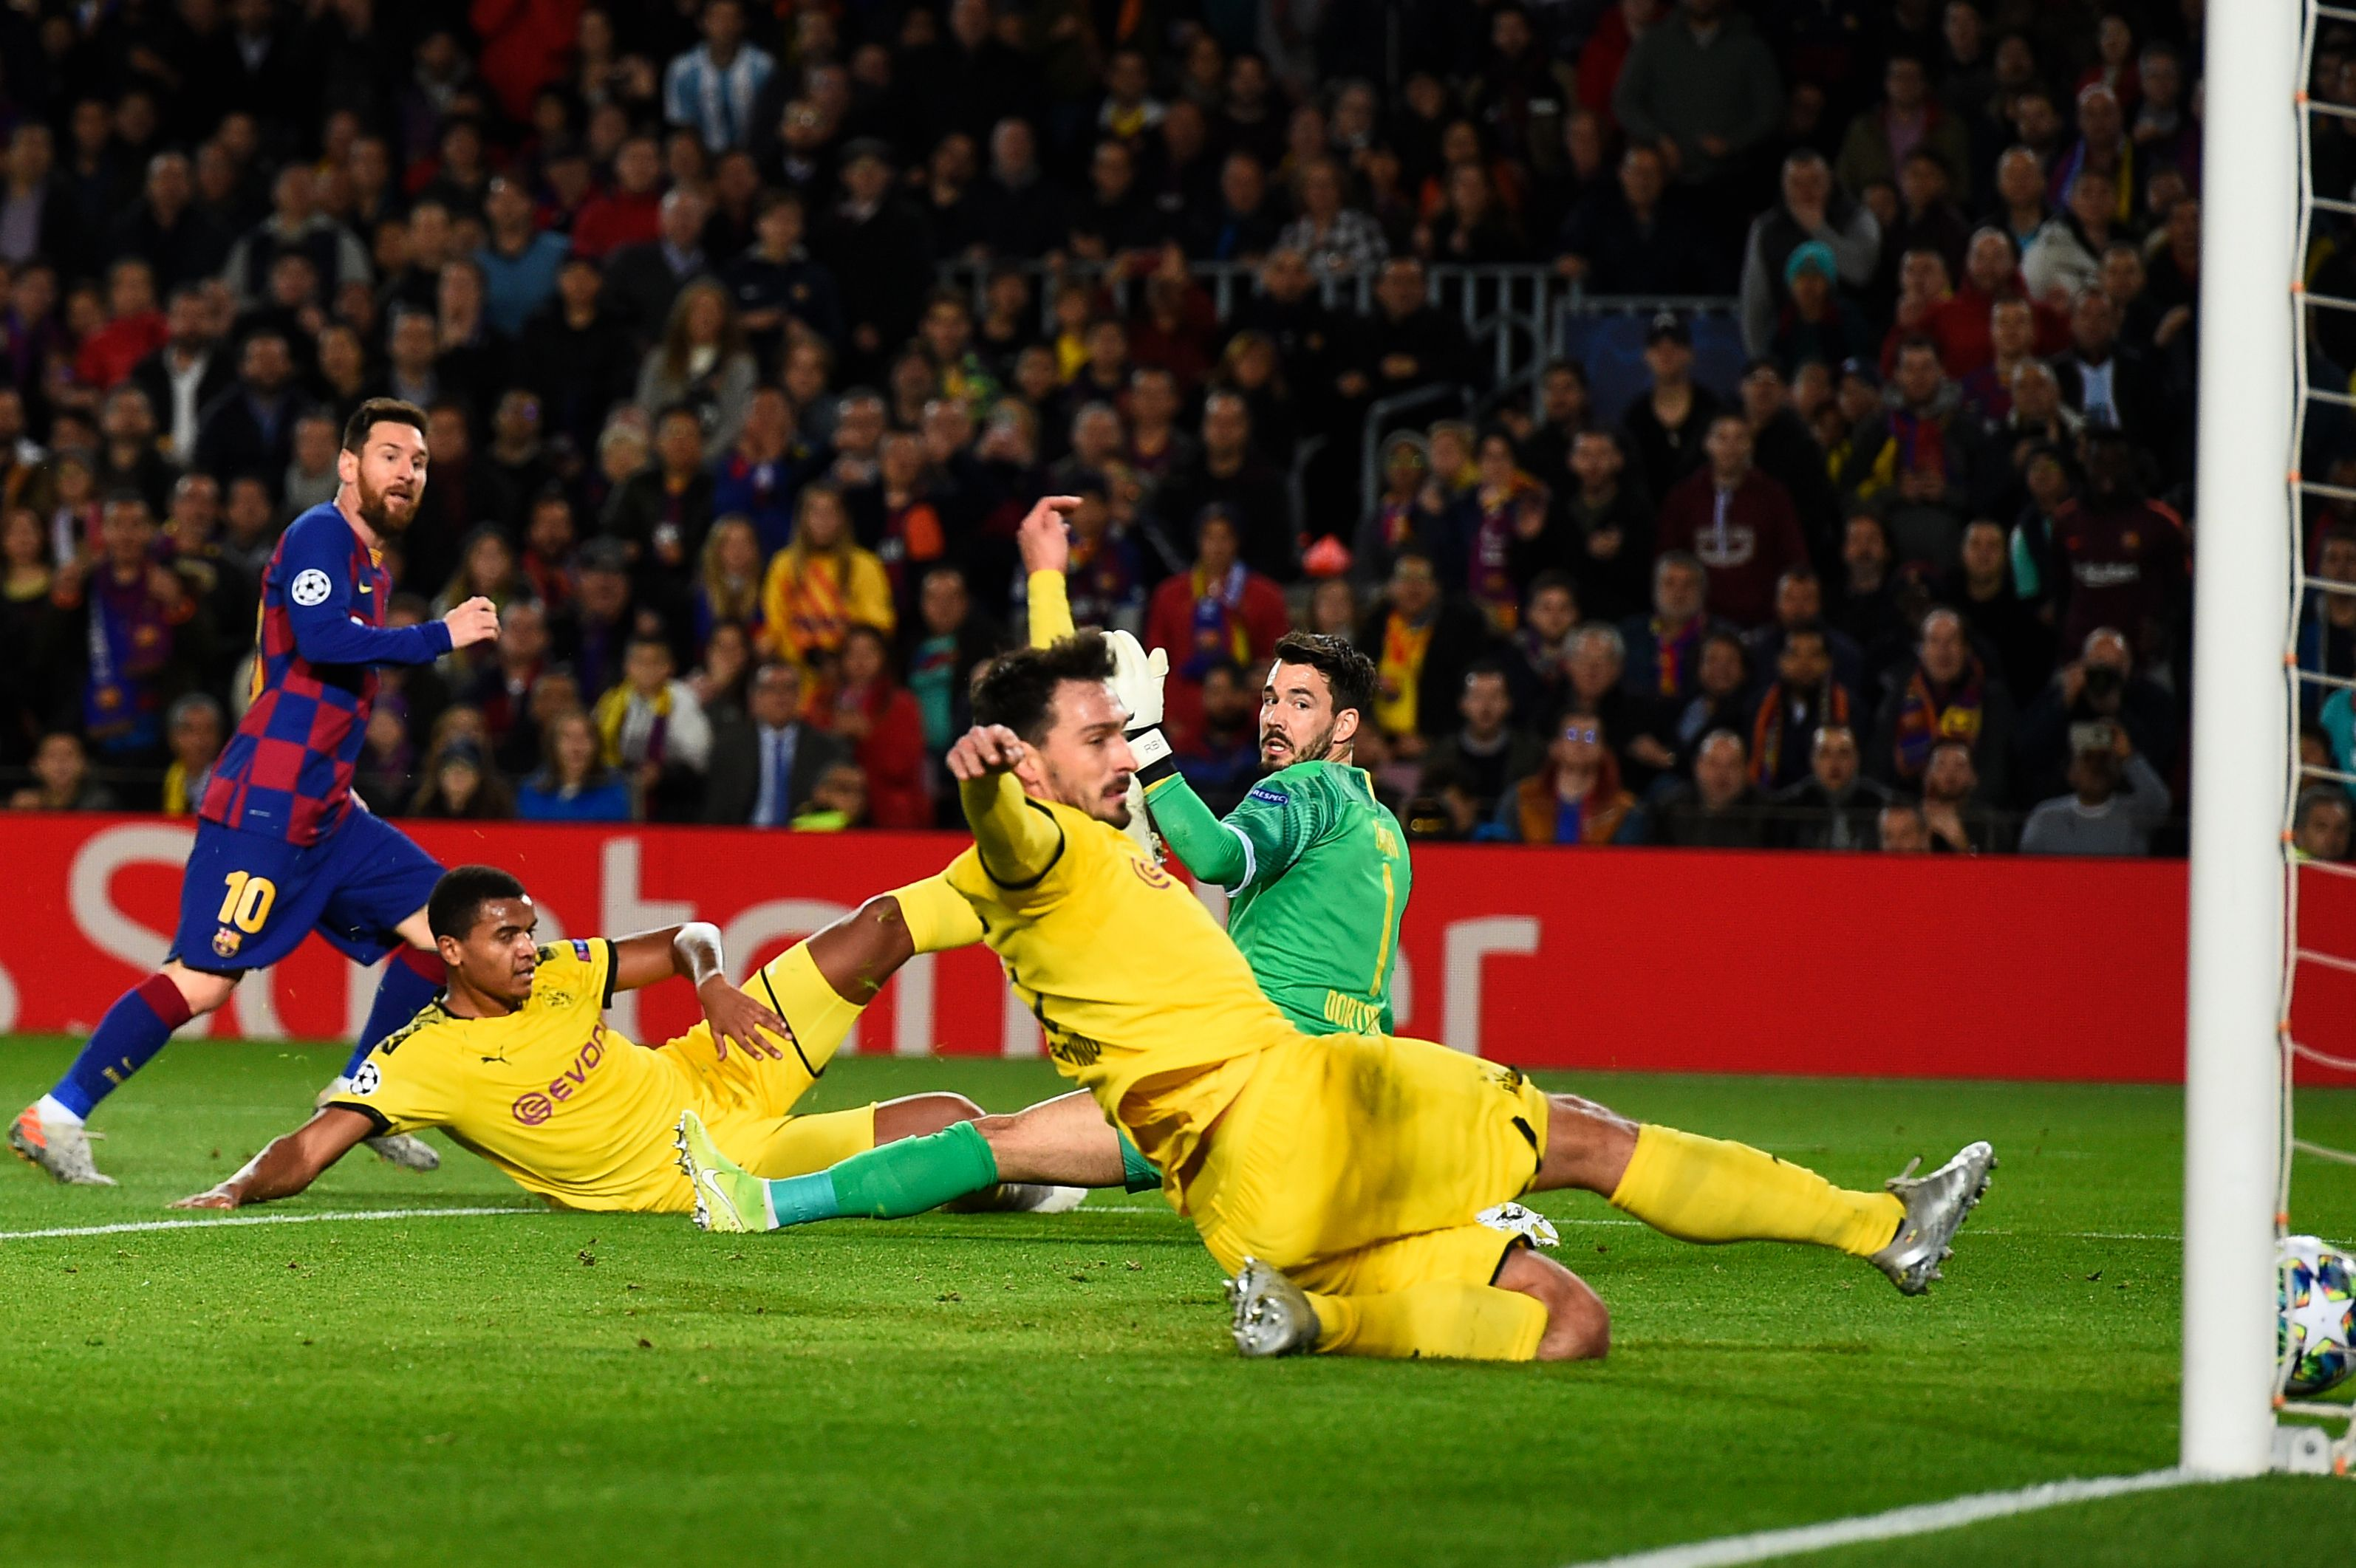 Lionel Messi fires home with Mats Hummels diving in desperation.